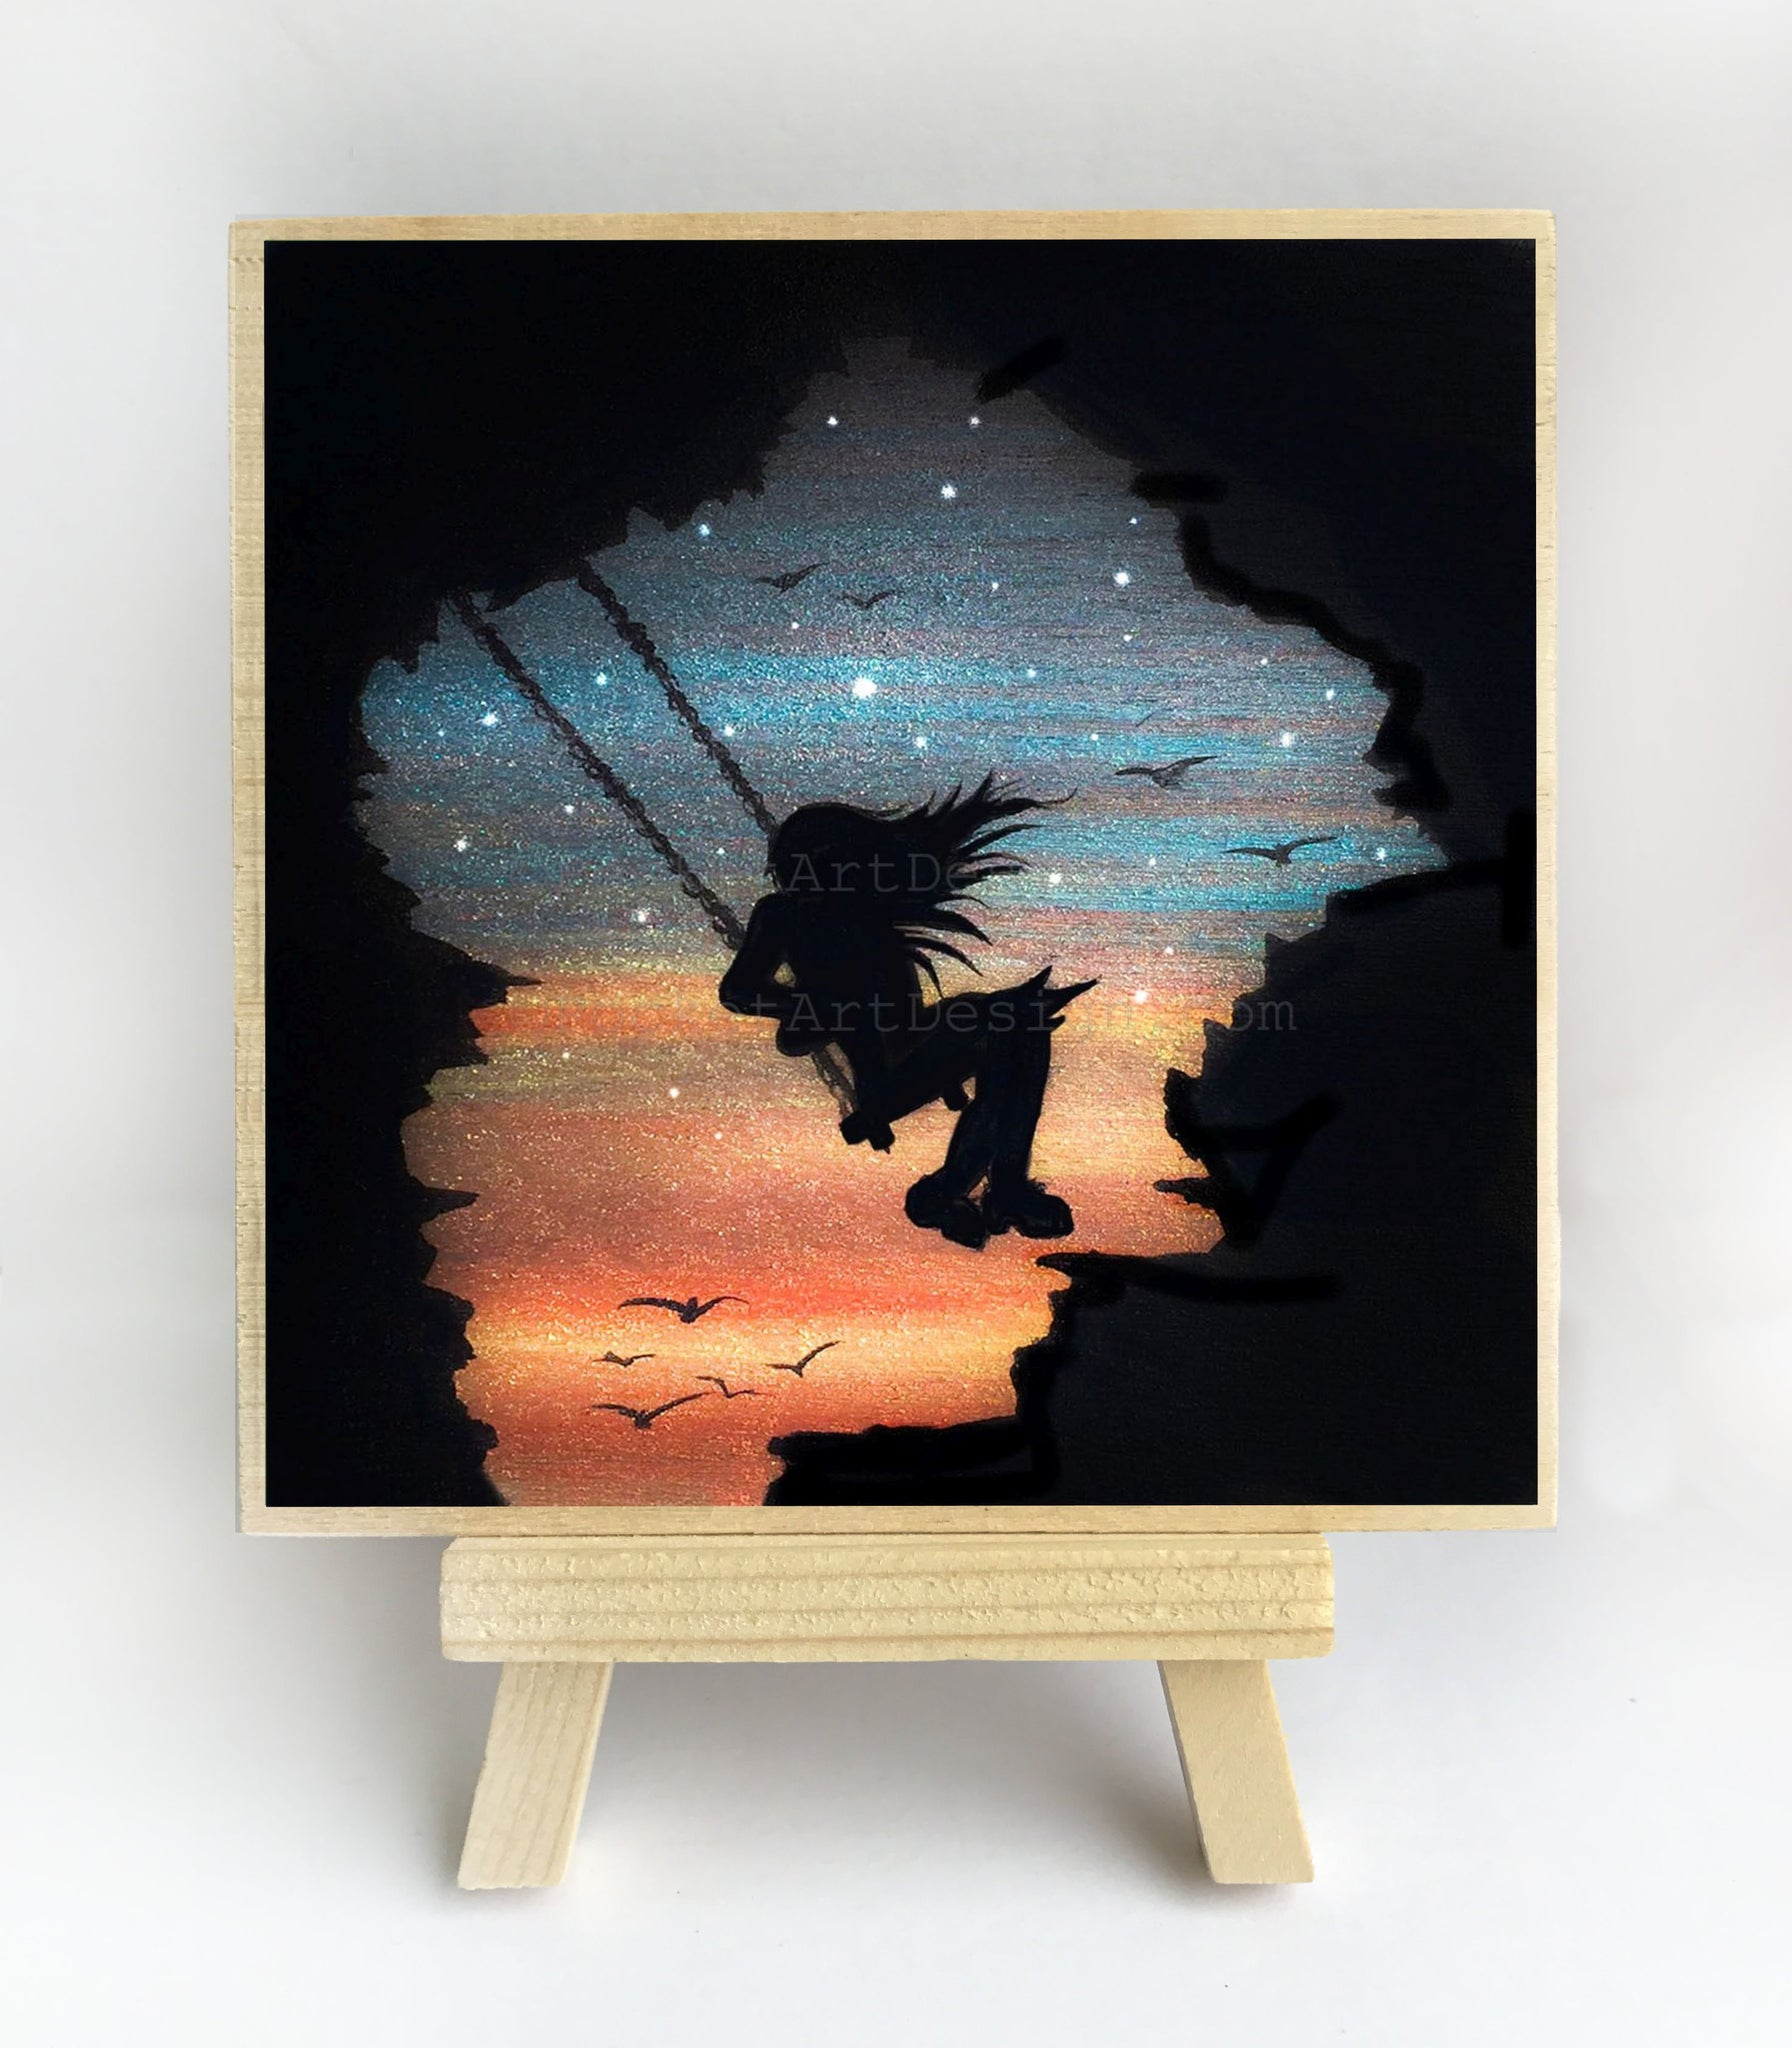 Girl swing in the sky - cave - night - silhouette - original miniature art print on 4 x 4 wood-Print-Easel Wood-PocketArtDesigns-Original Art-wall rt